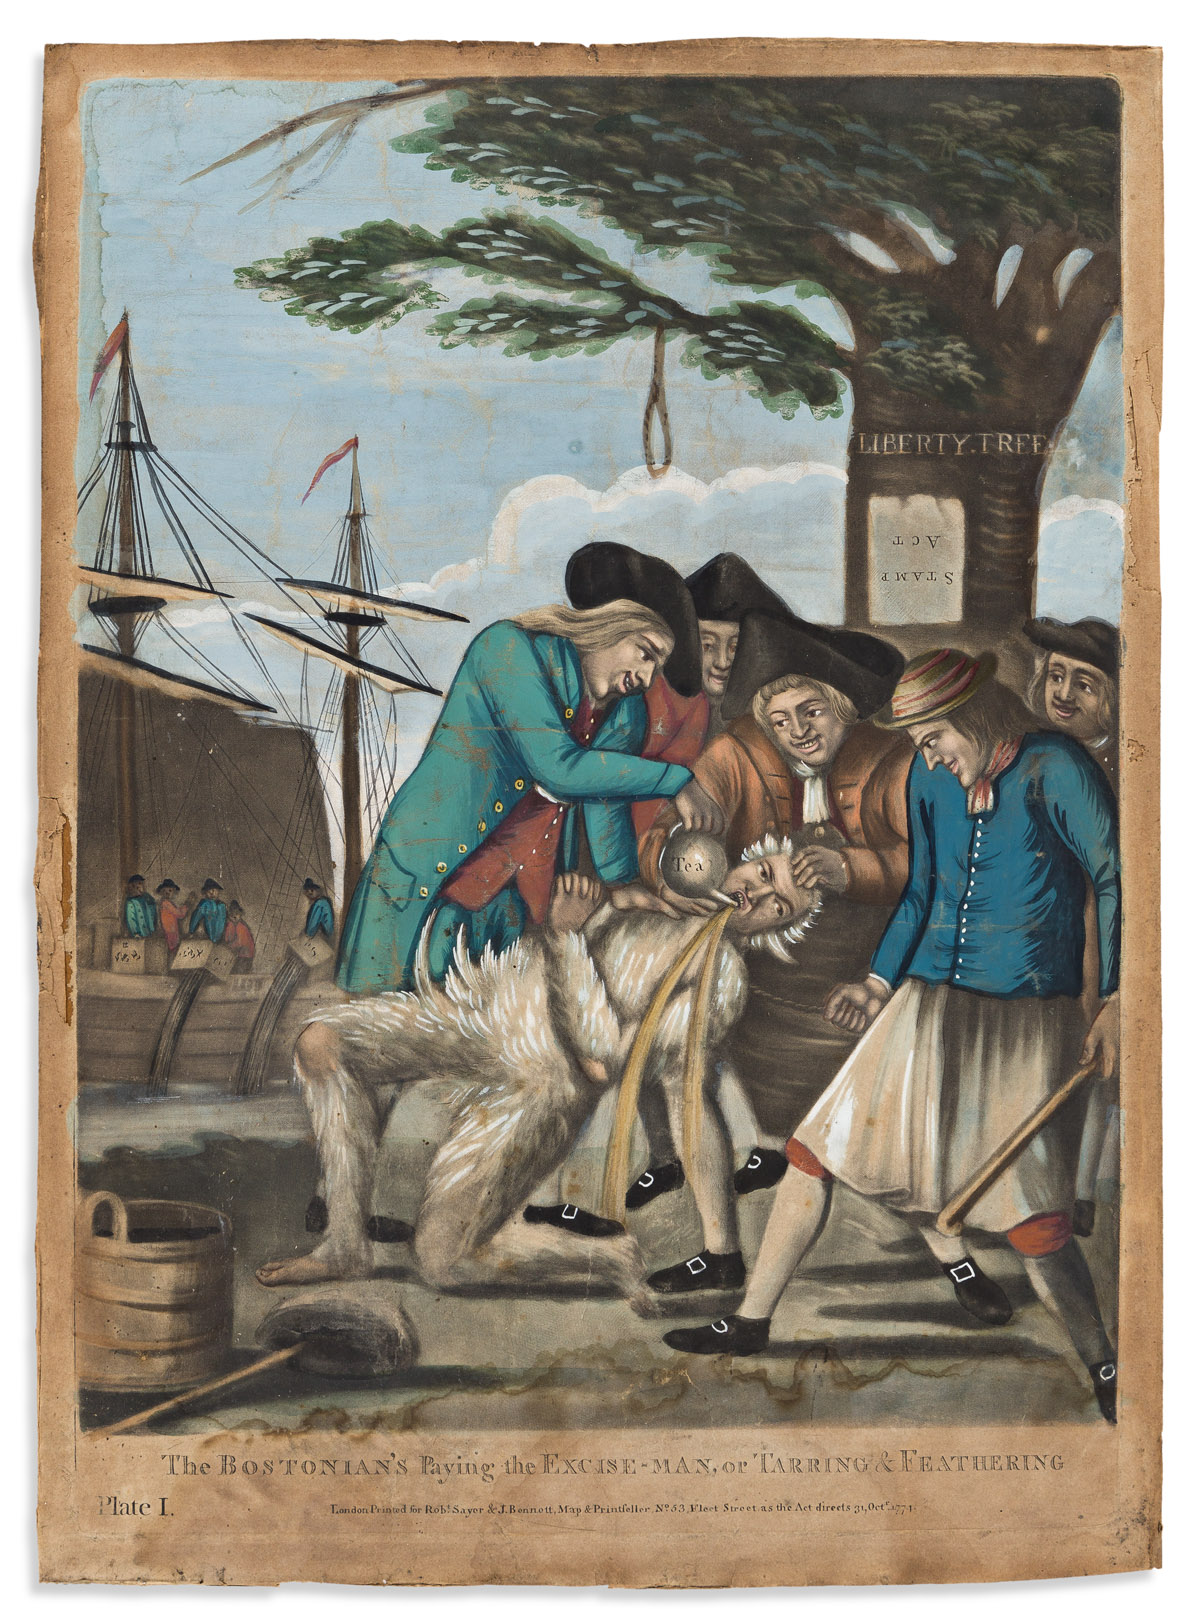 (AMERICAN REVOLUTION--PRELUDE.) [Philip Dawe, artist.] Bostonians Paying the Excise Man, or Tarring & Feathering.